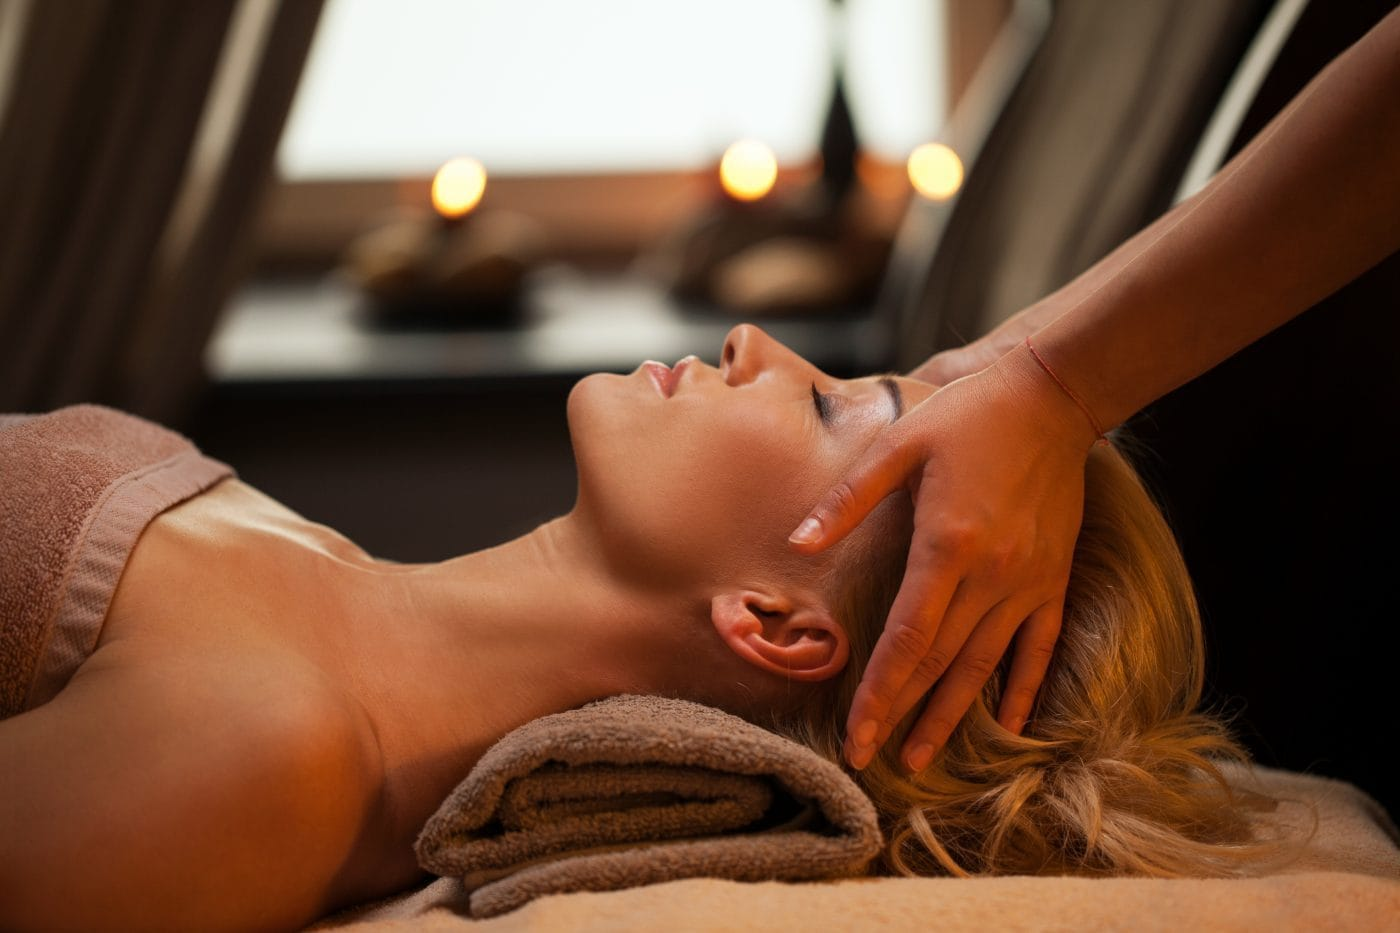 Beautiful young woman enjoys massage in a luxury spa resort